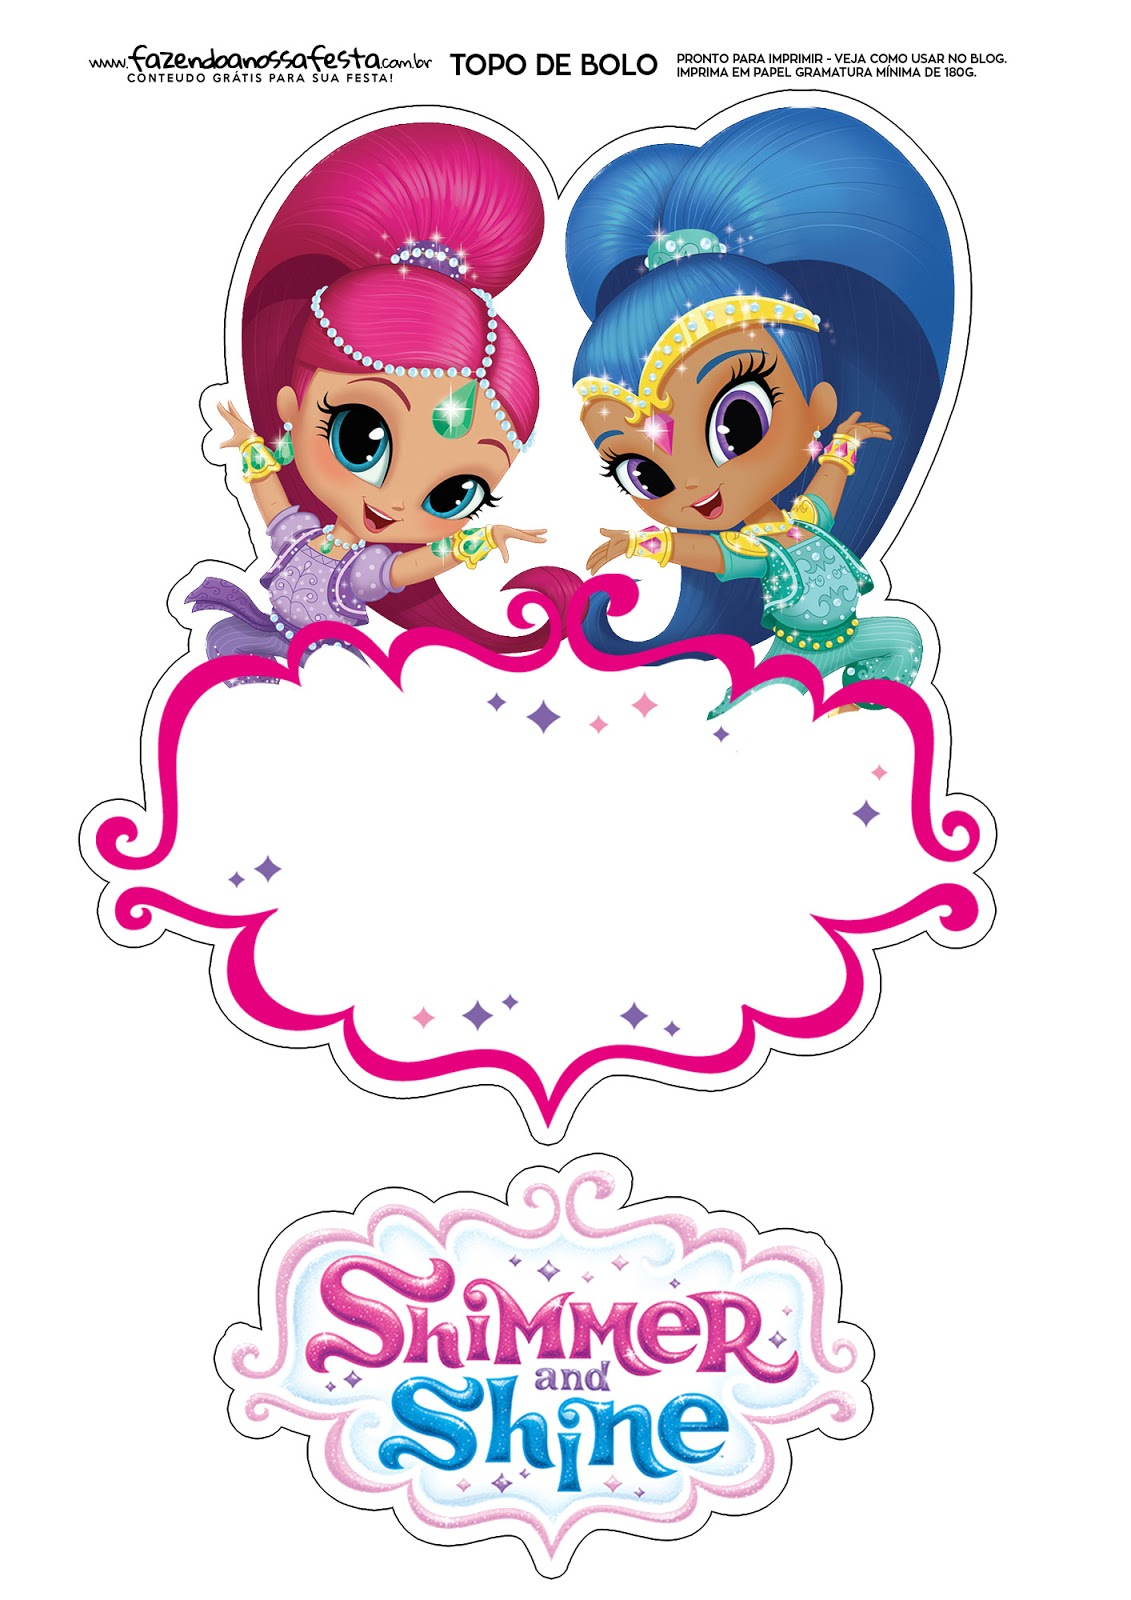 Shimmer And Shine Free Printable Cake Toppers Oh My Fiesta In